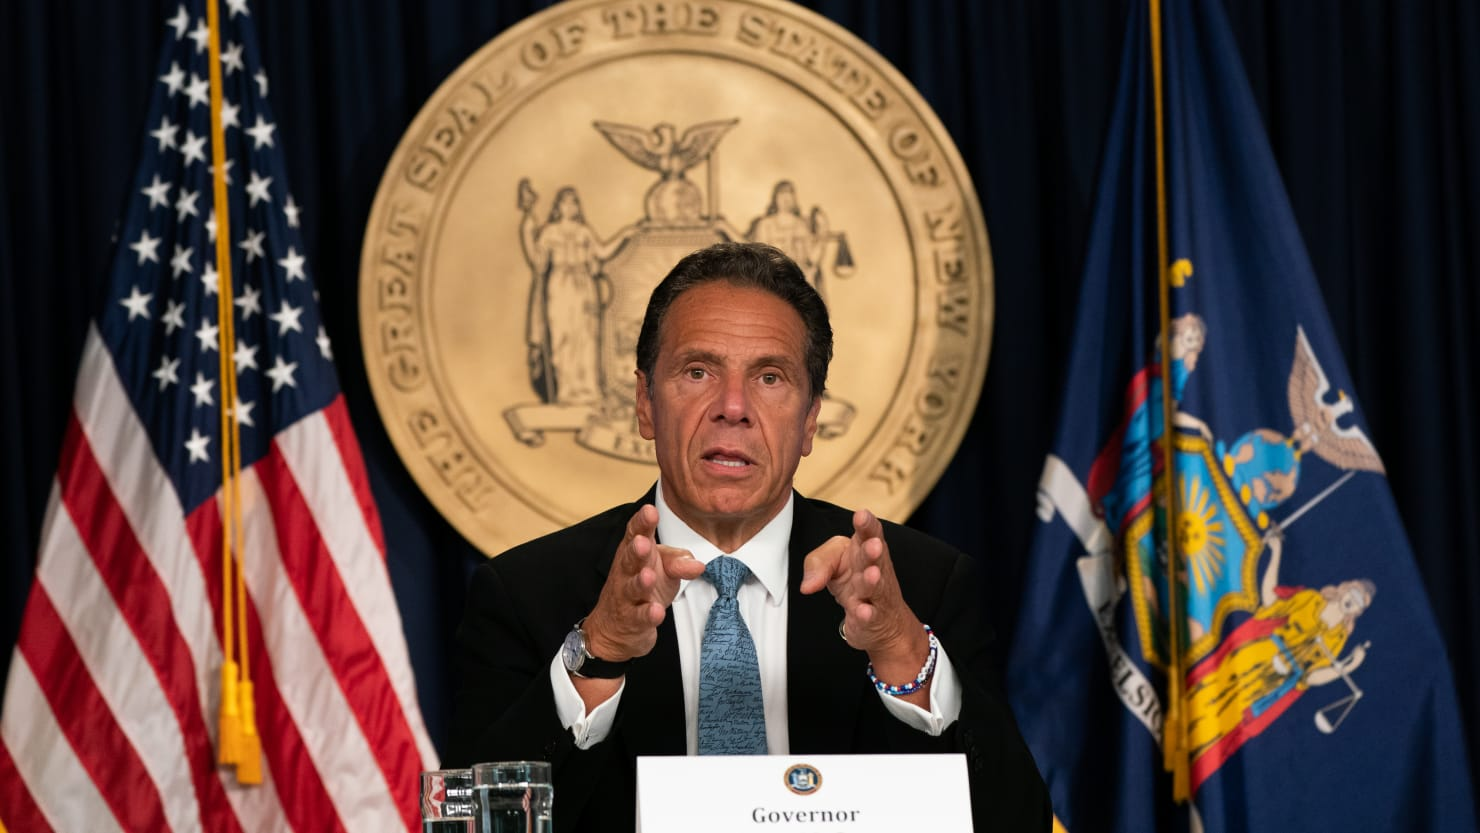 New York Gov. Andrew Cuomo Says Trump 'Better Have an Army' to Show His Face in NYC